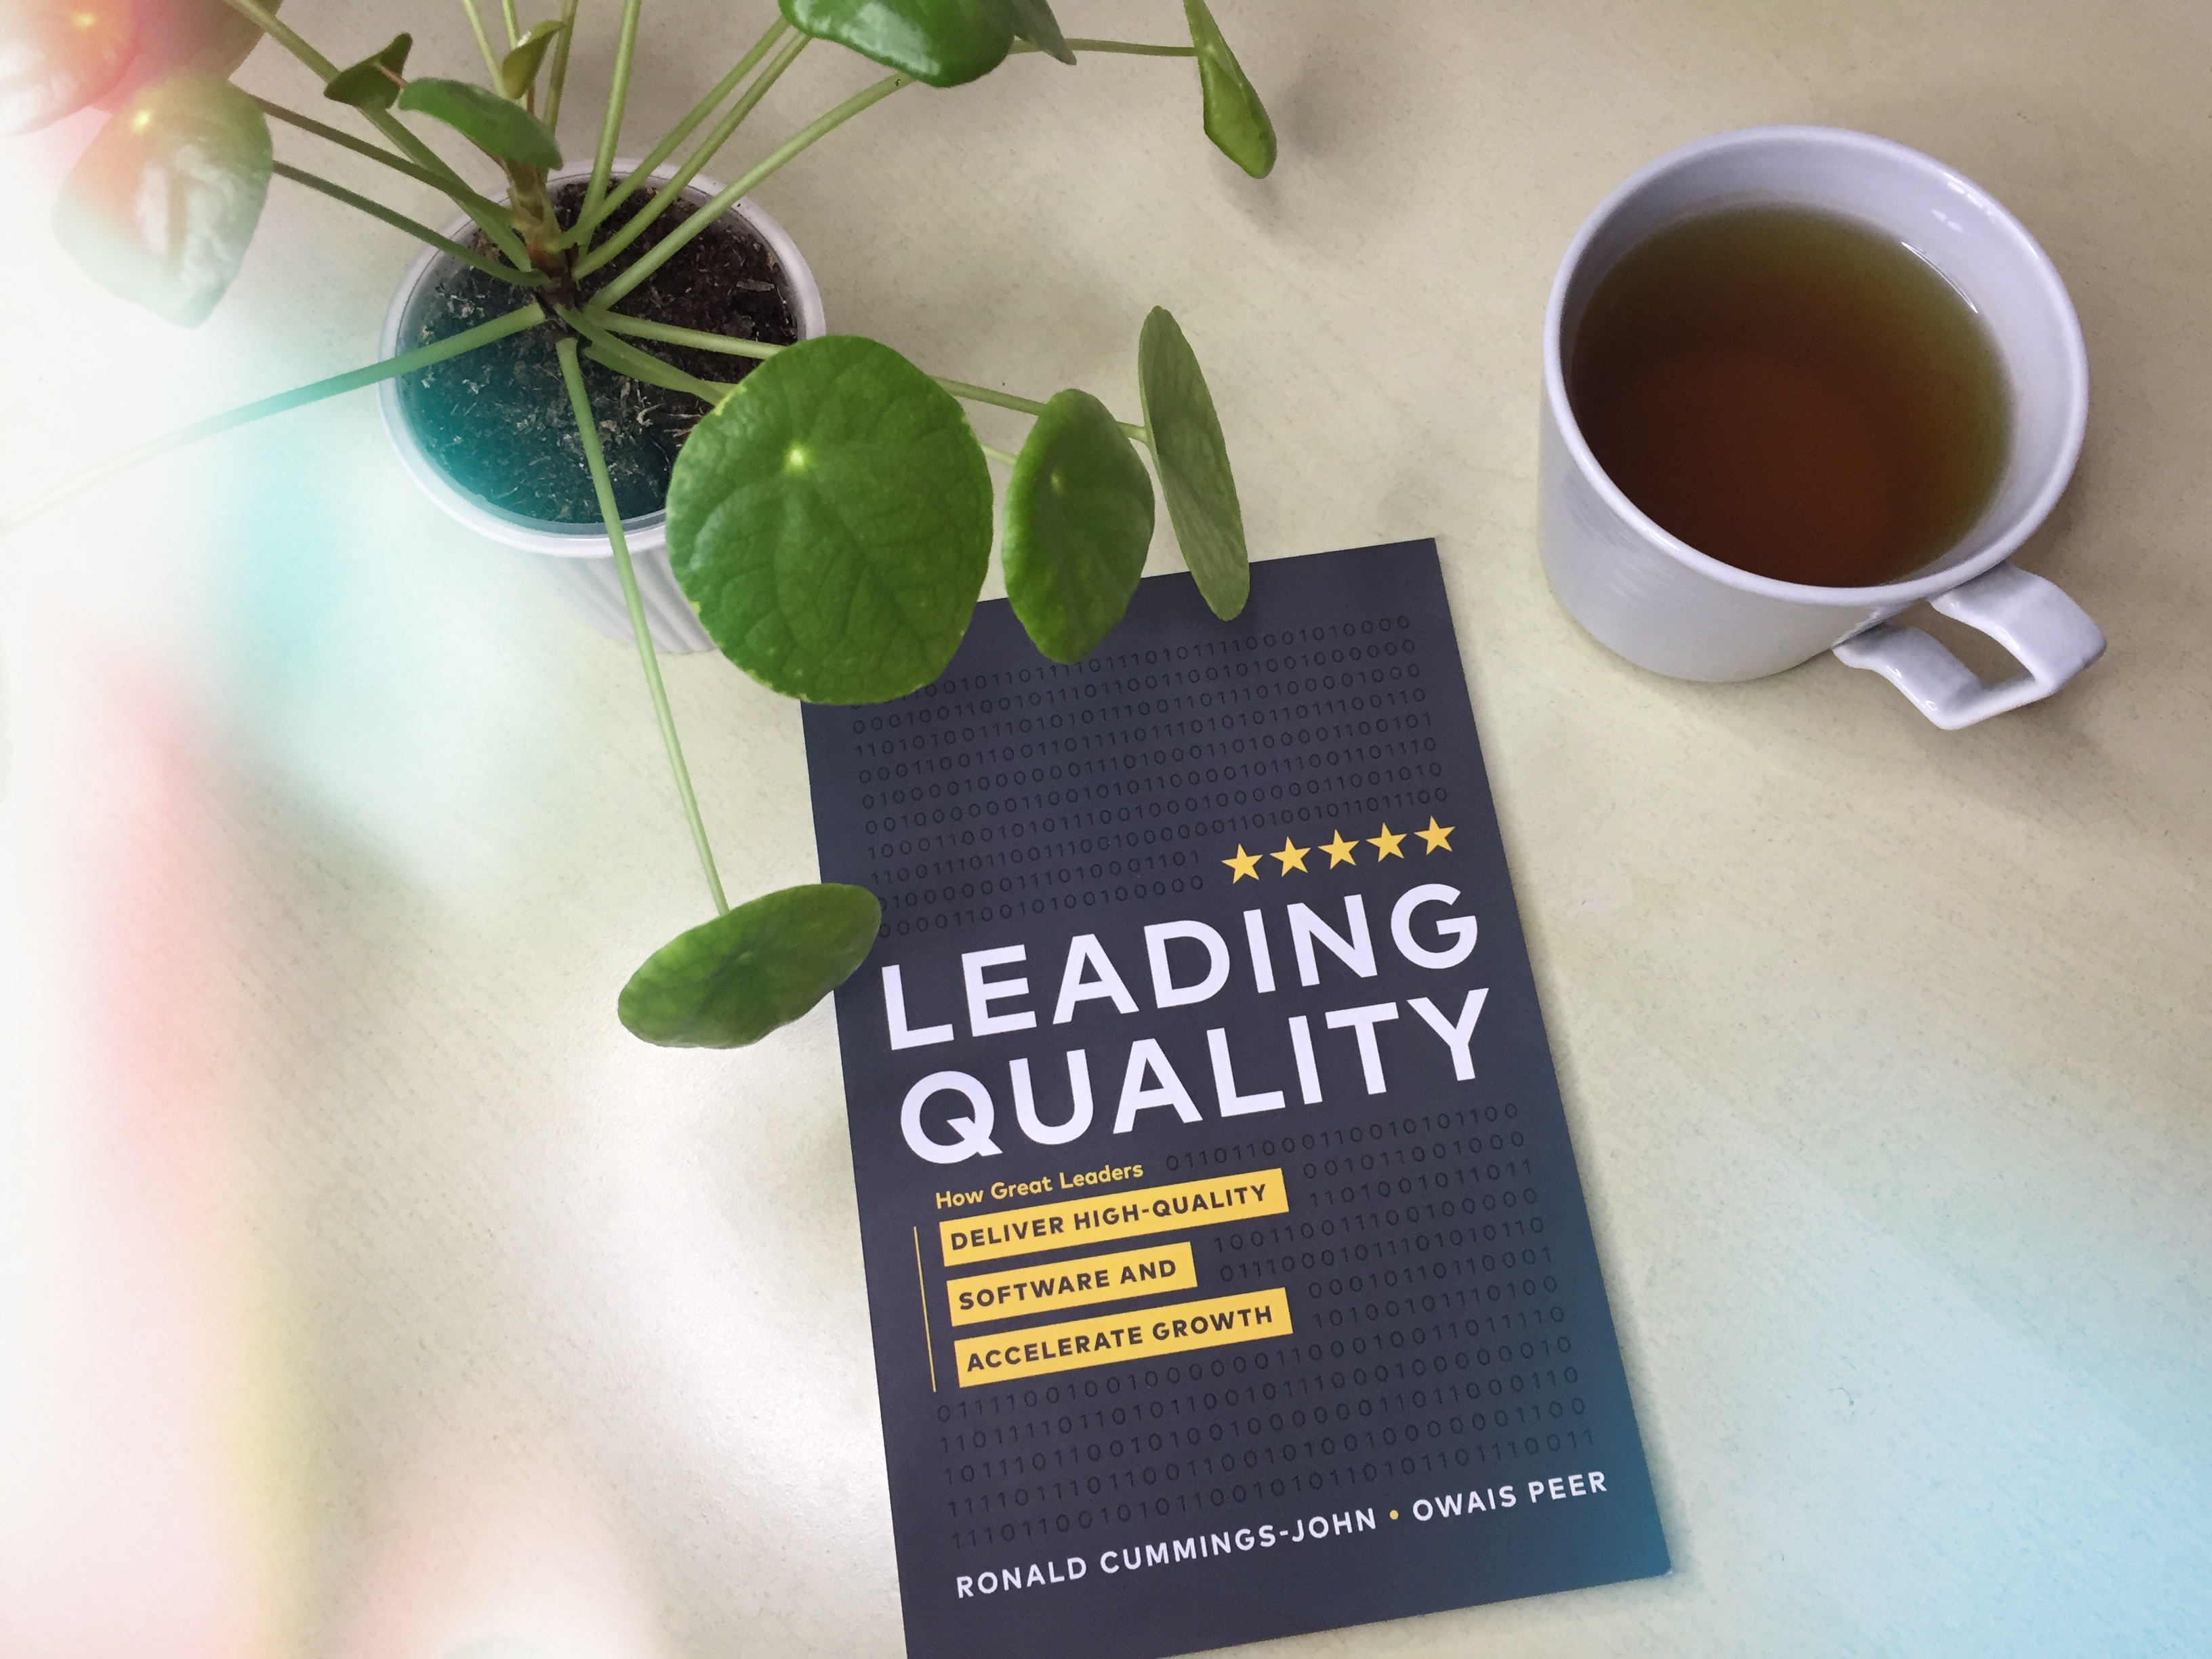 Leading Quality Book image